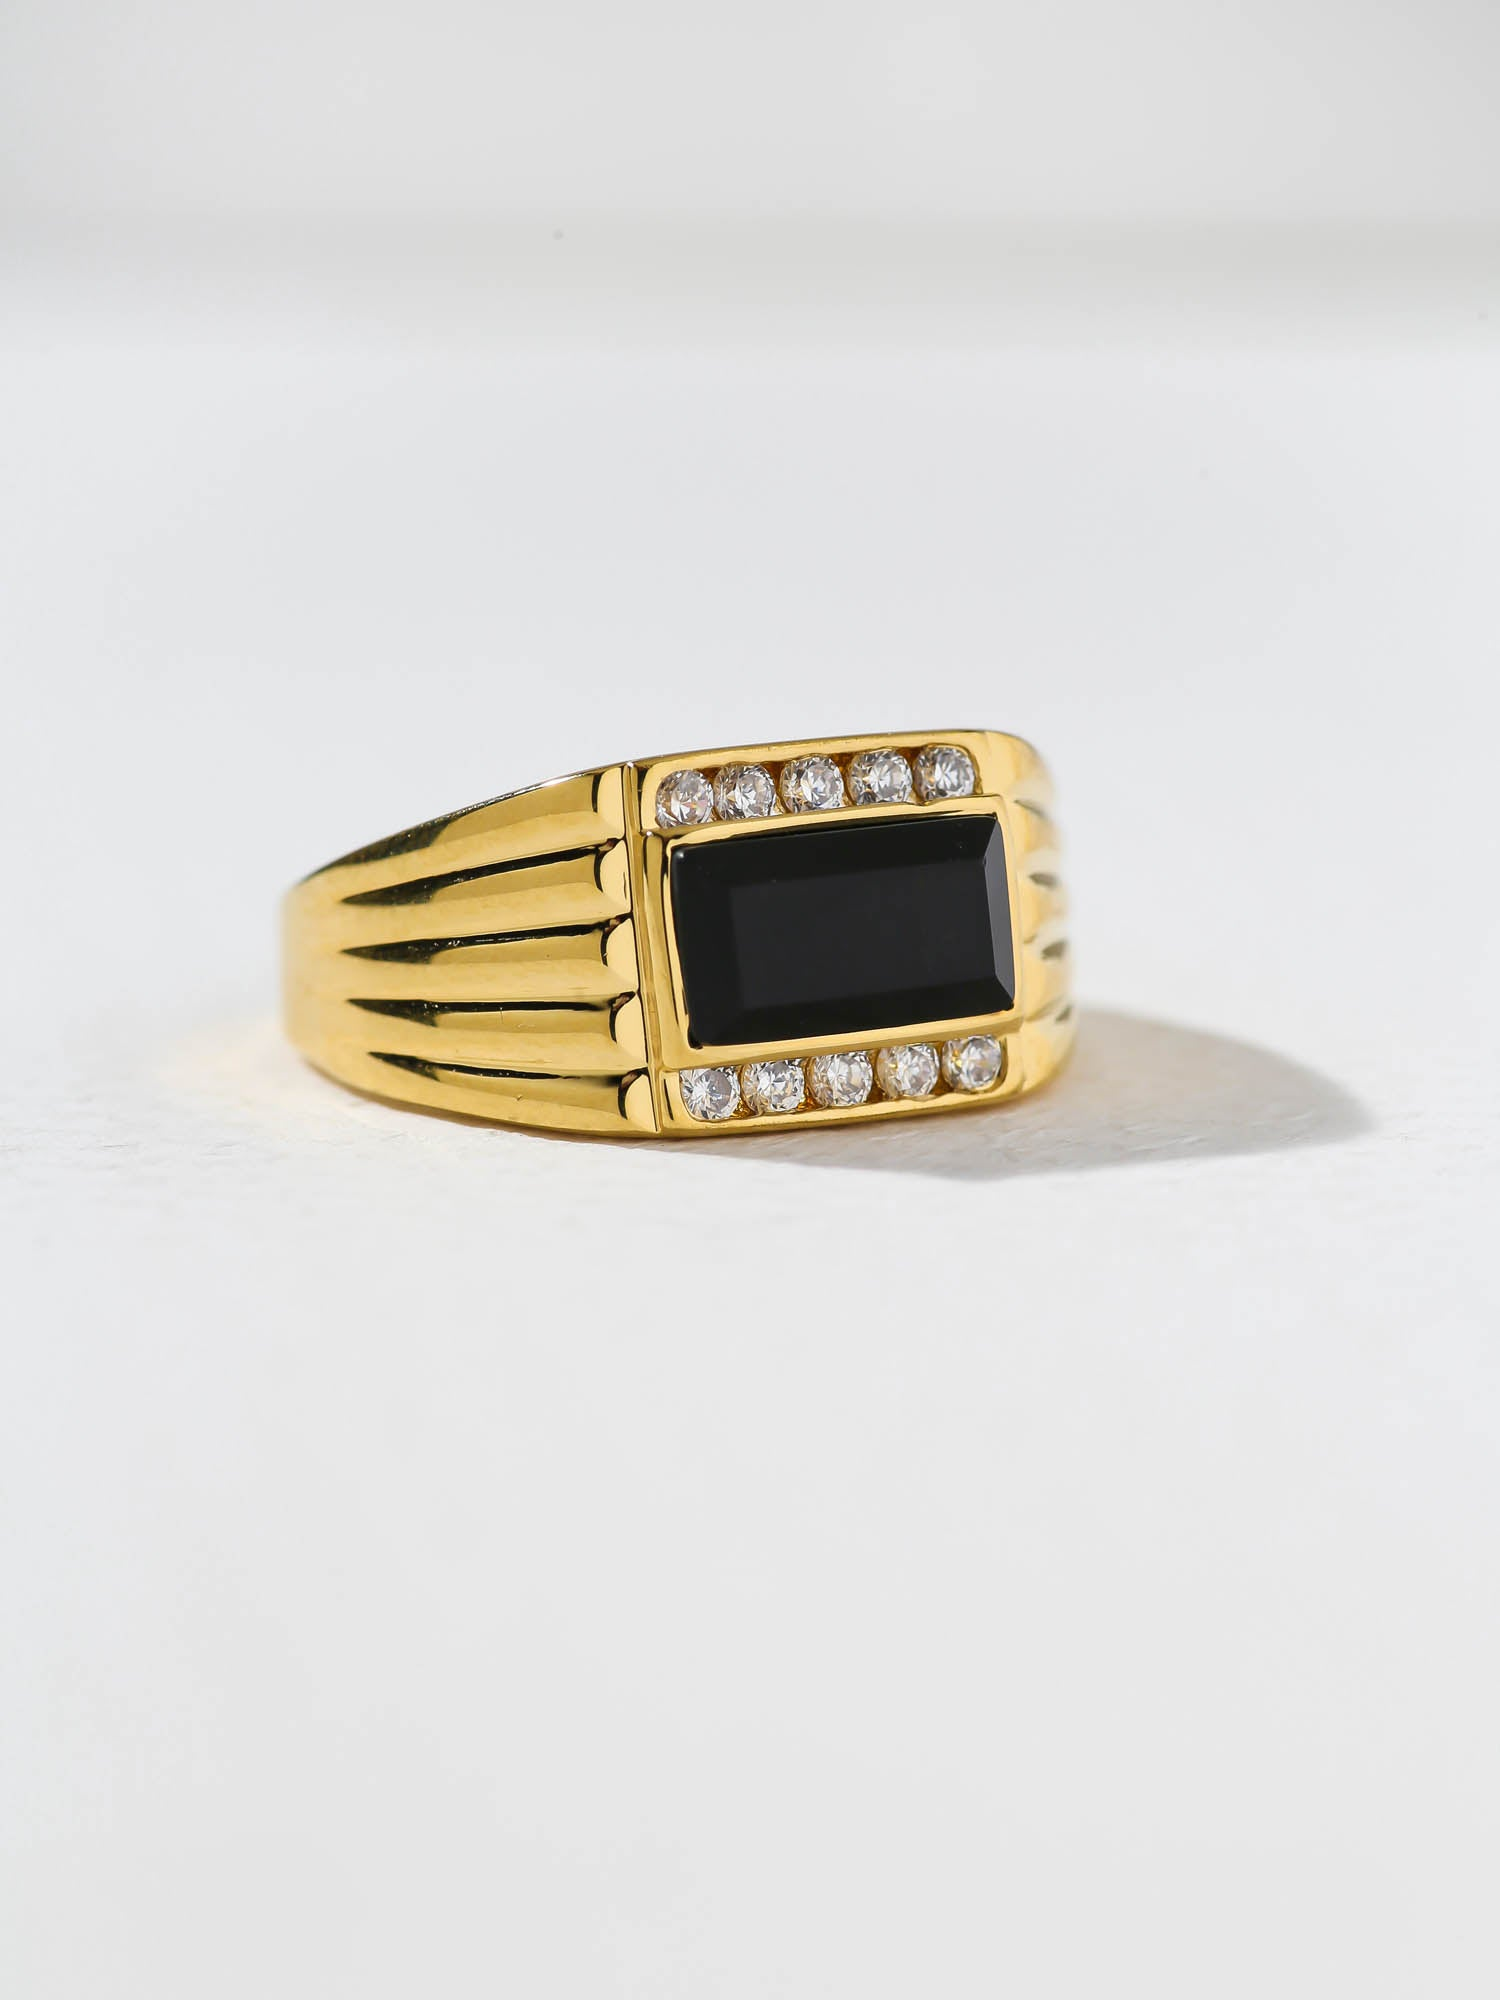 Rings The Papa Unisex Ring Vanessa Mooney